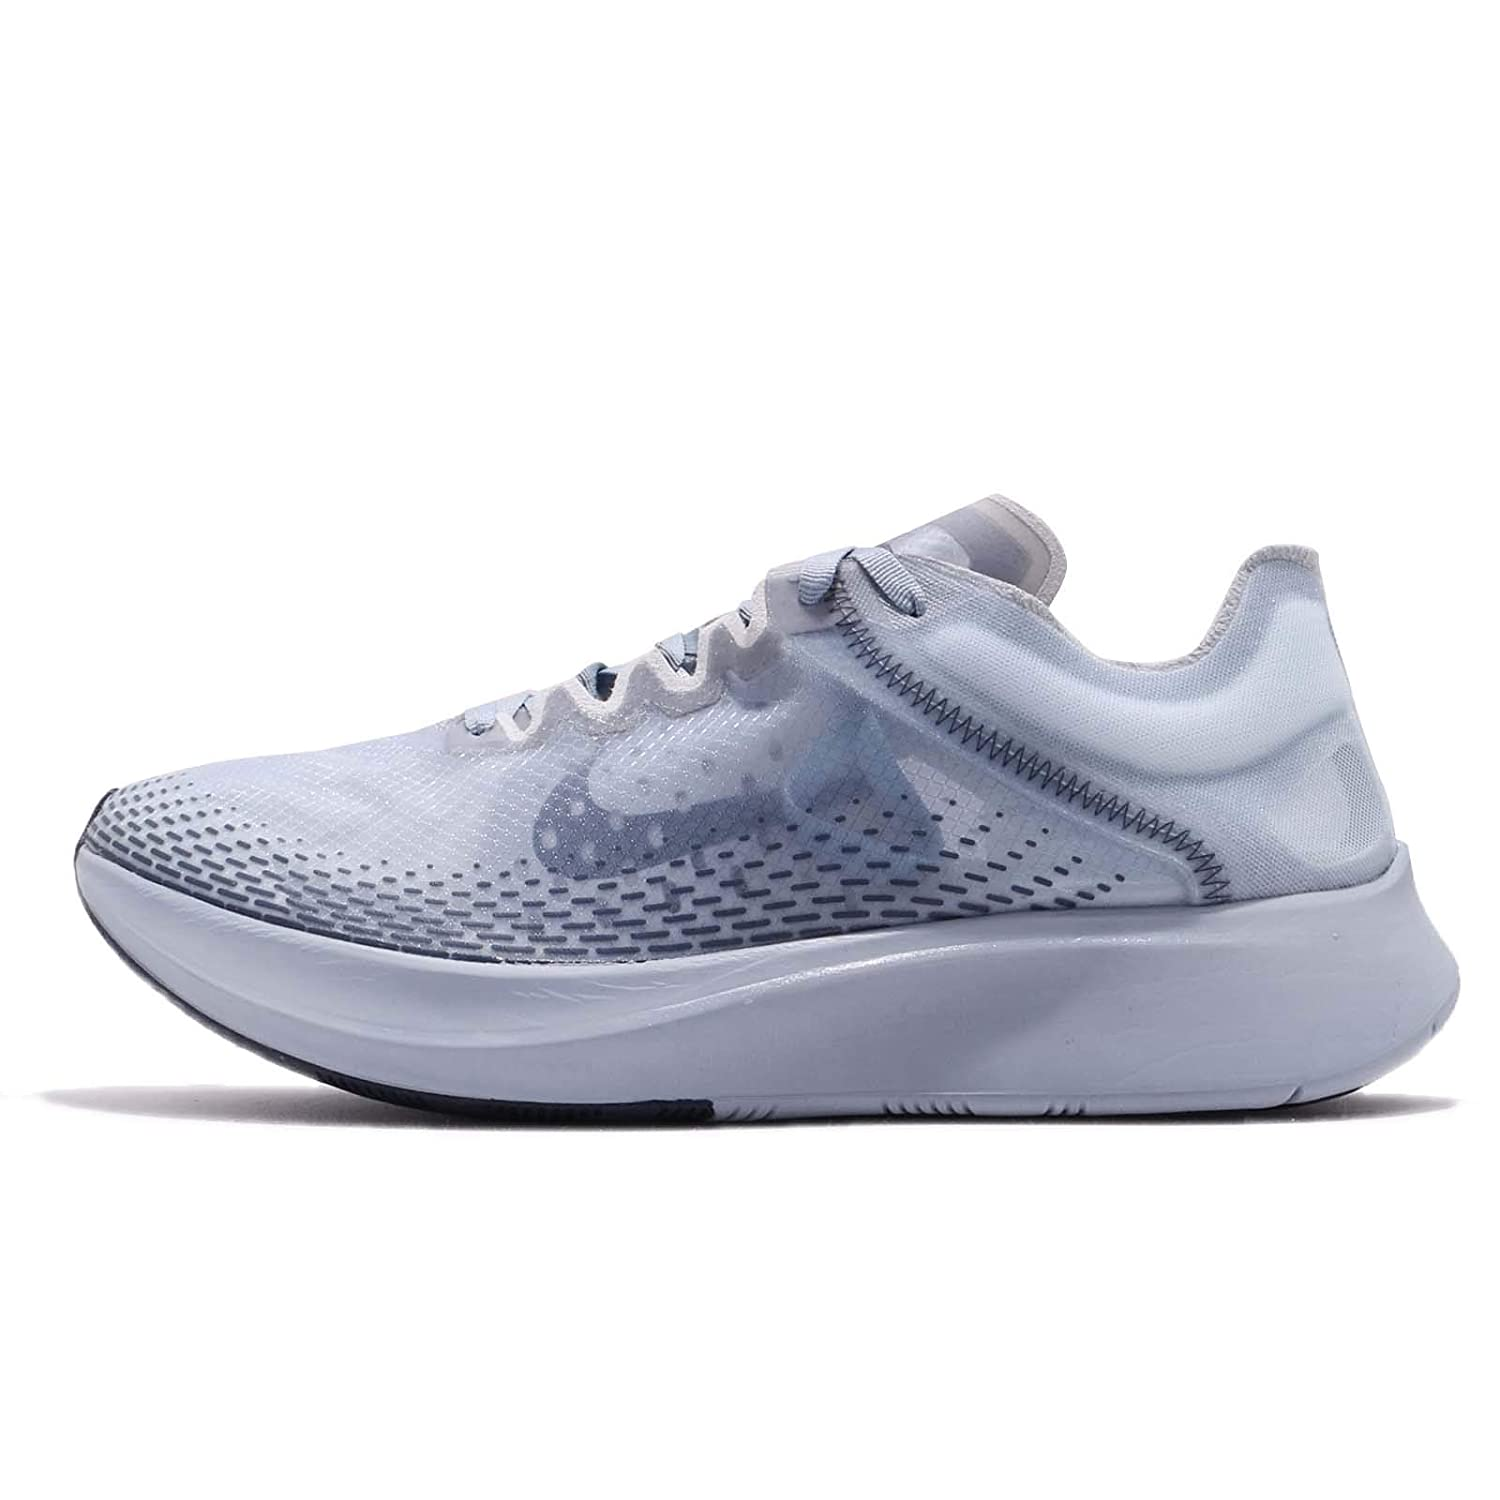 uk availability 6baab 3147c Amazon.com   Nike Zoom Fly SP Fast   Sneakers